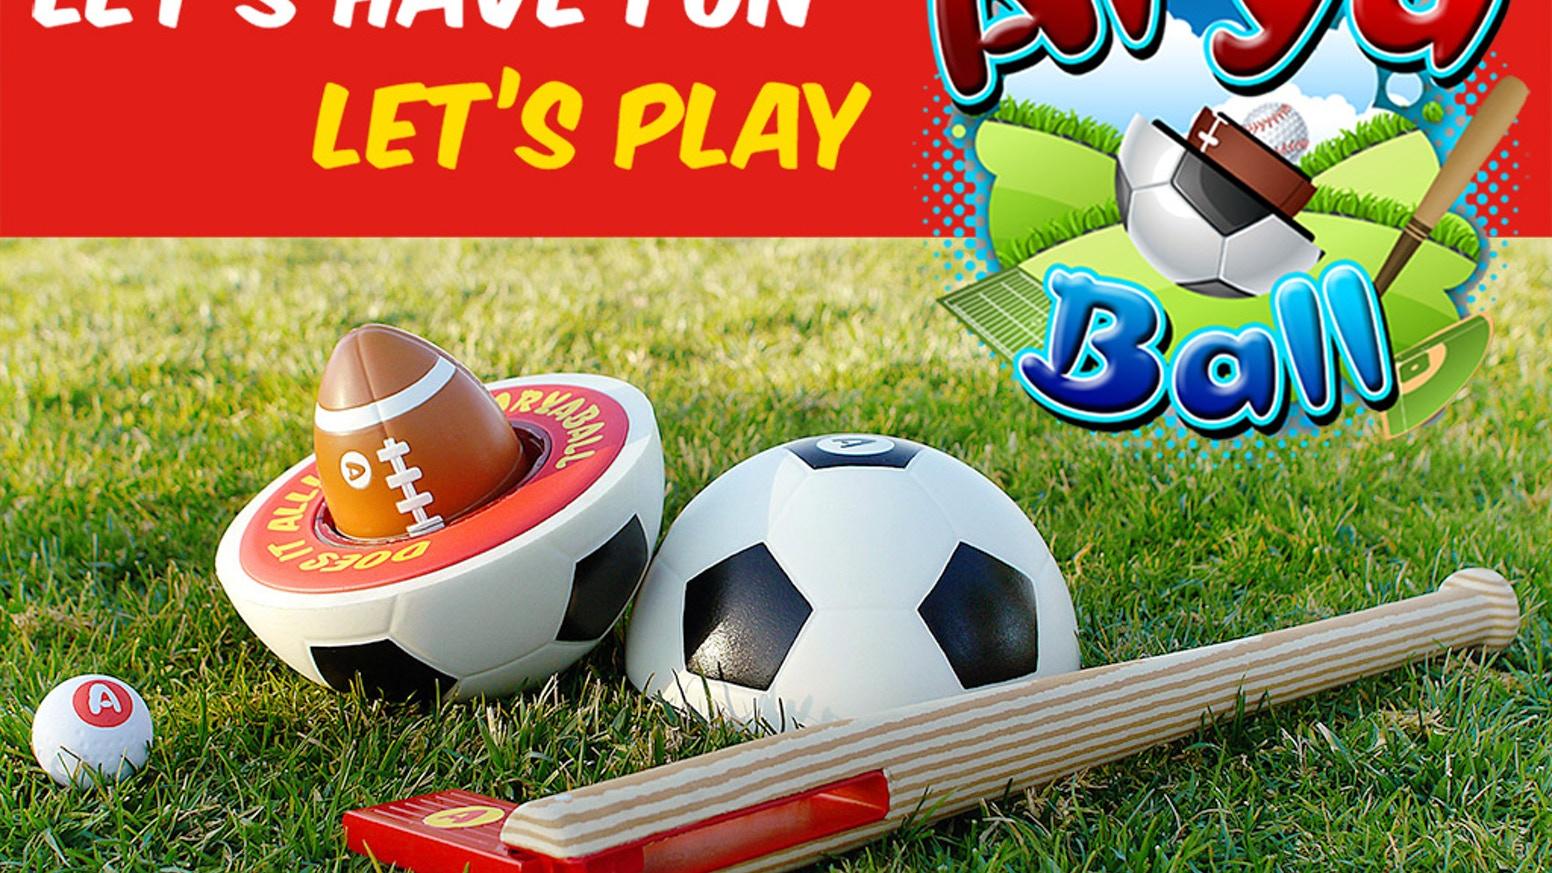 0b21d7a3b97 AryaBall  Play 5 Sports with World s Most Fun Ball and Bat by Babak ...